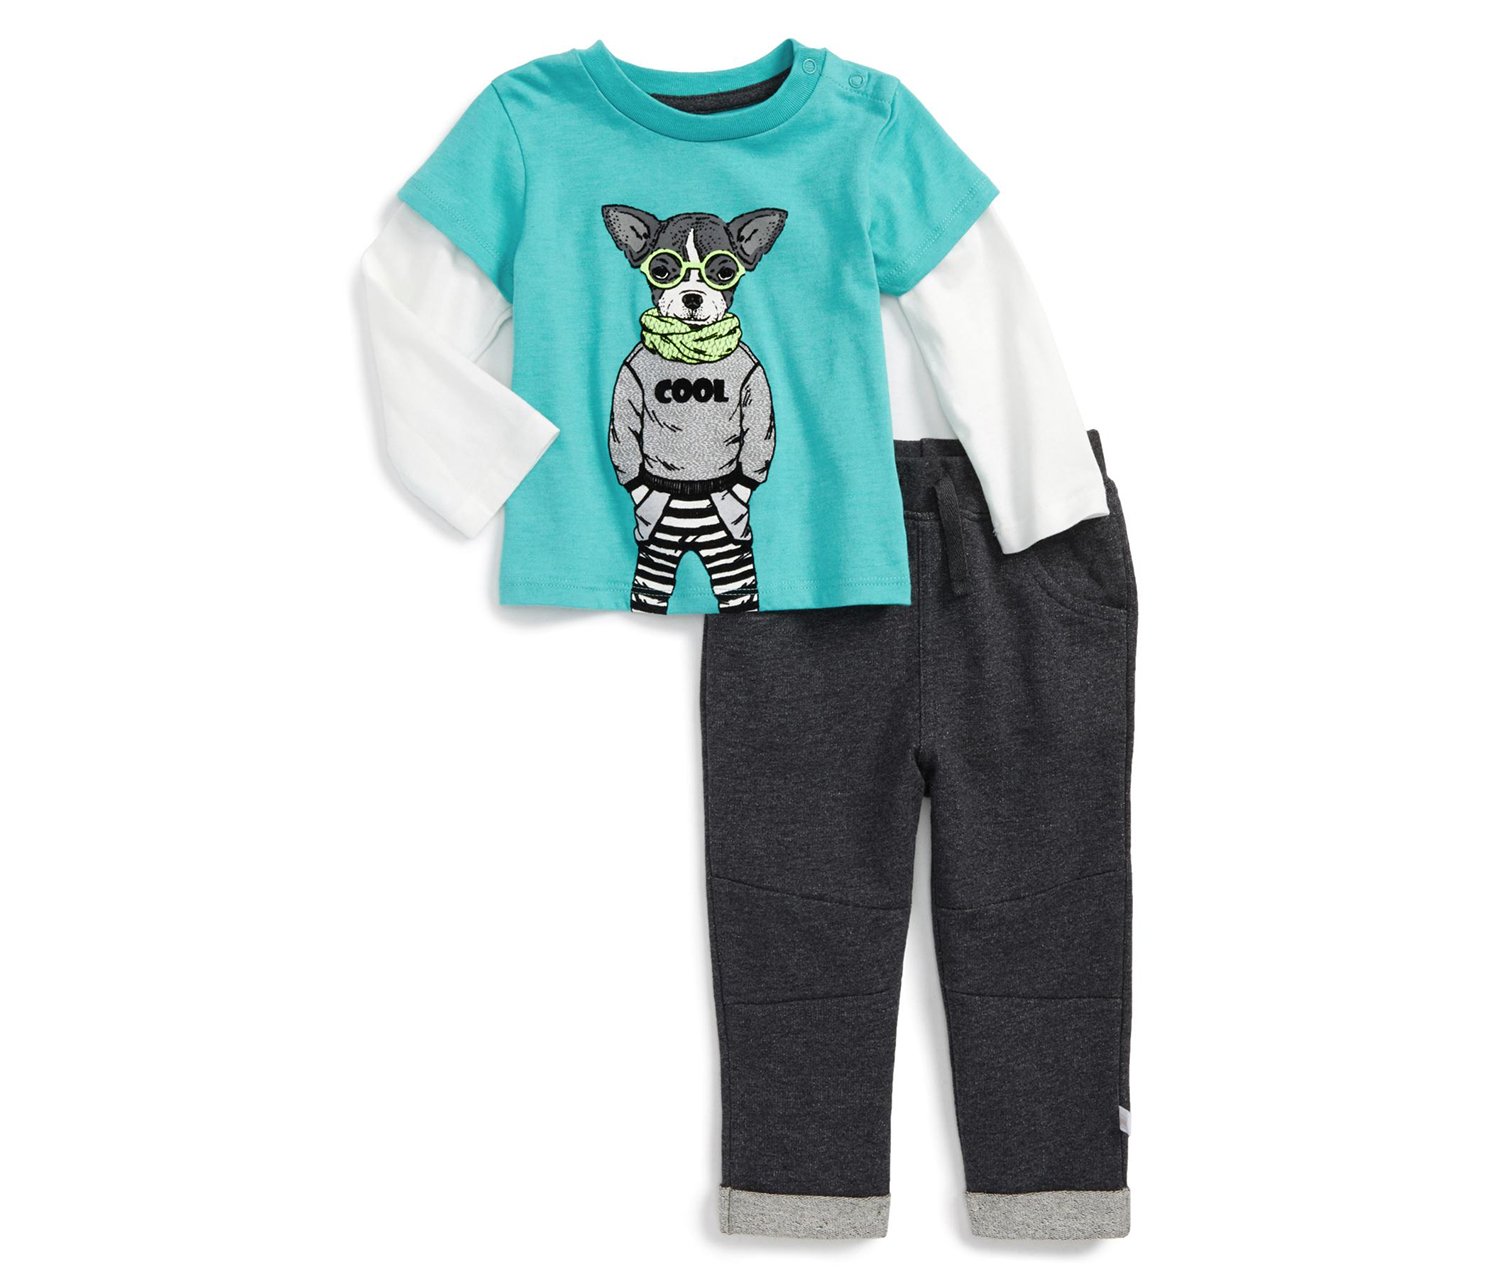 Baby Rose Nerdy Layered Shirt & Sweatpants Set, Blue/Gray